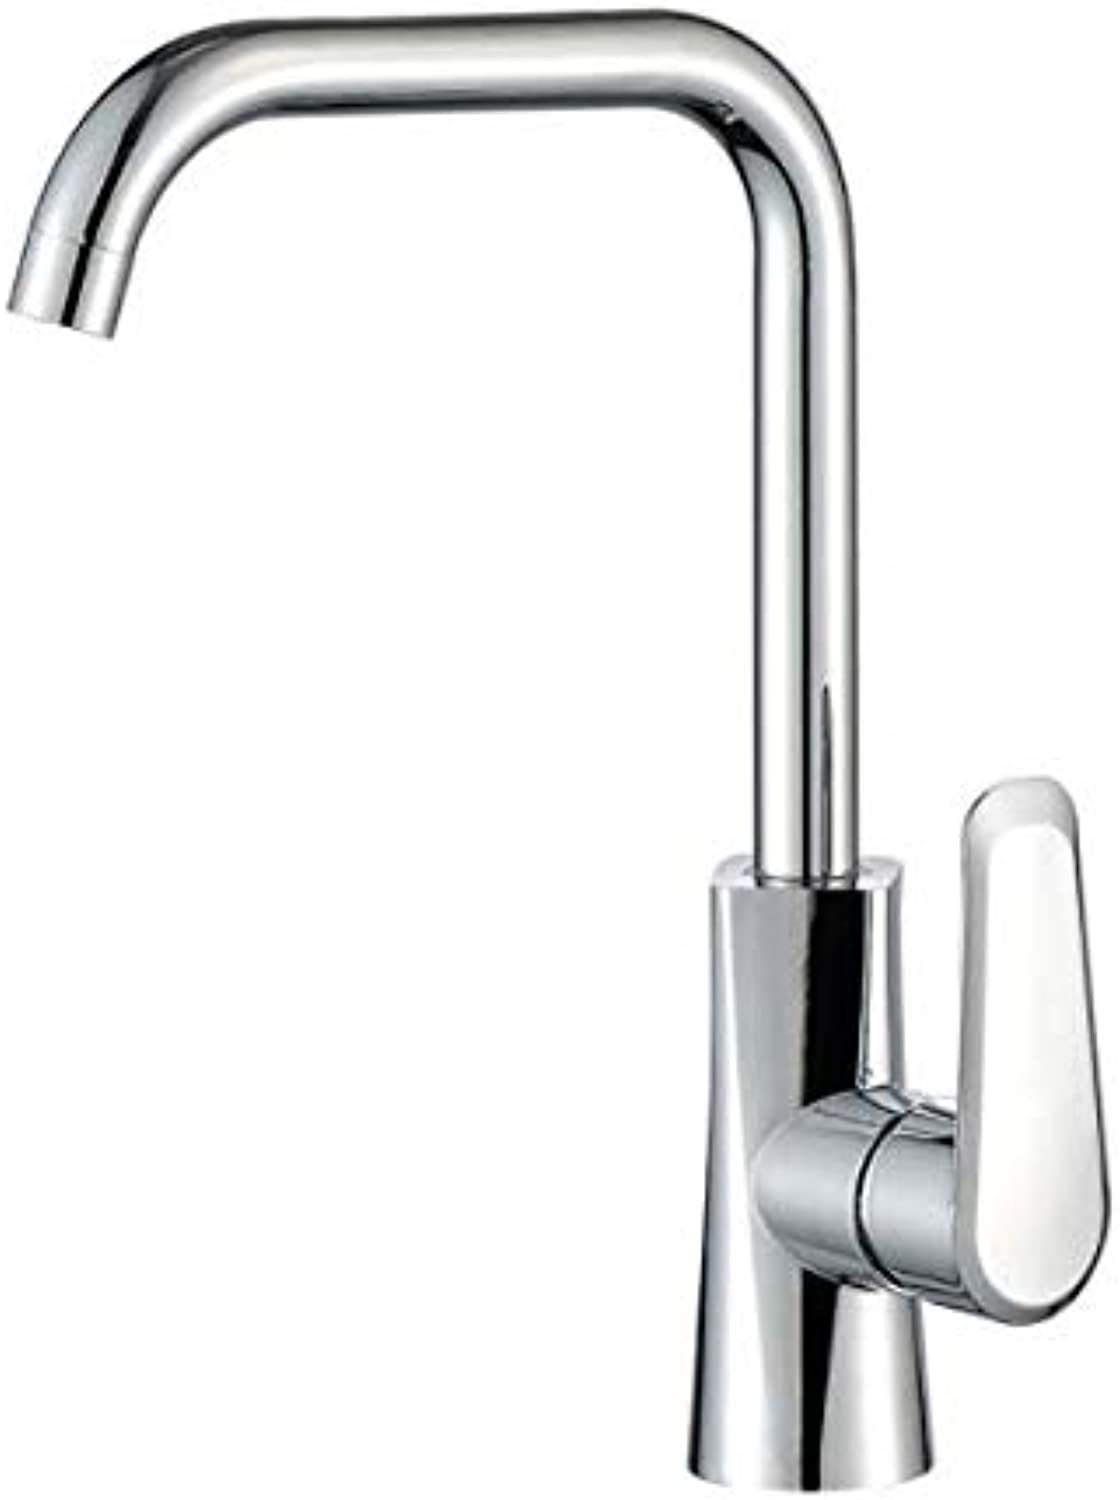 Taps Kitchen Basin Bathroom Washroomthe Kitchen is Hot and Cold, The Dishes Wash Basin, The Sink Can Turn The Basin.